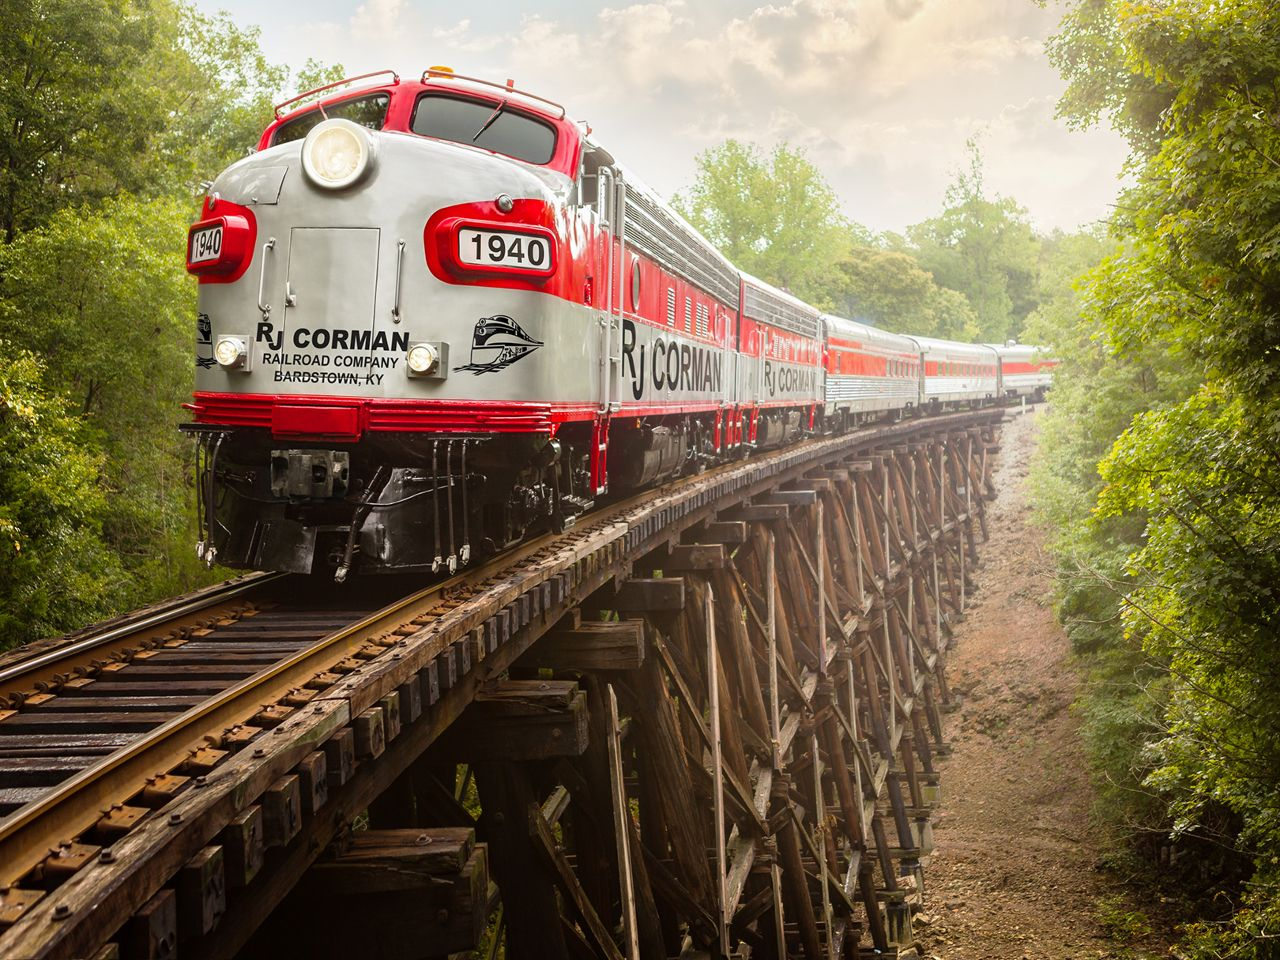 This bourbon train is the ultimate whiskey drinking experience in the US